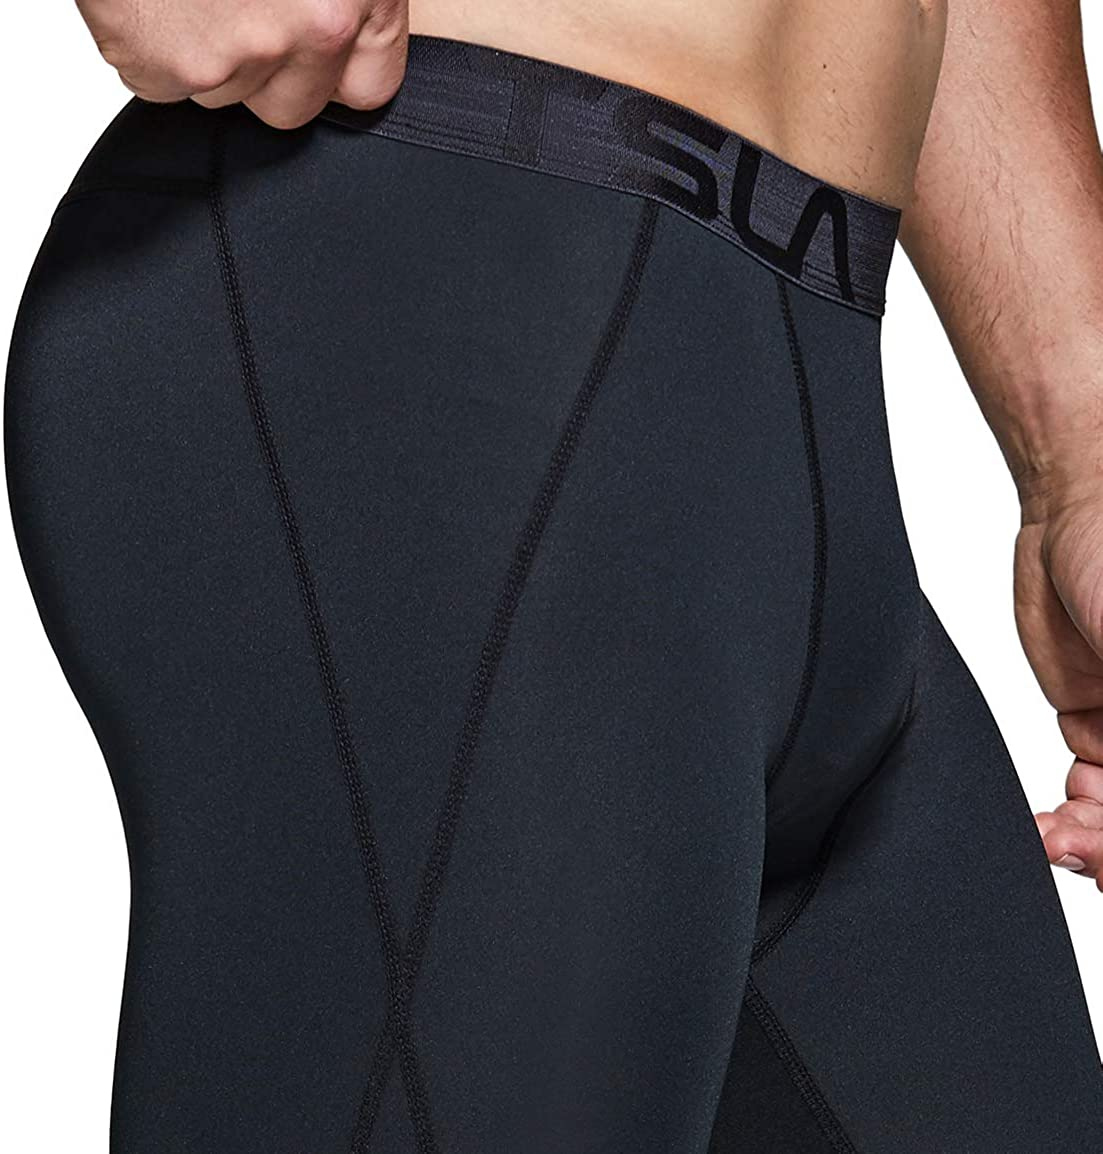 Cool Dry Capri Athletic Leggings TSLA 1 or 2 Pack Mens 3//4 Compression Pants Yoga Gym Base Layer Running Workout Tights